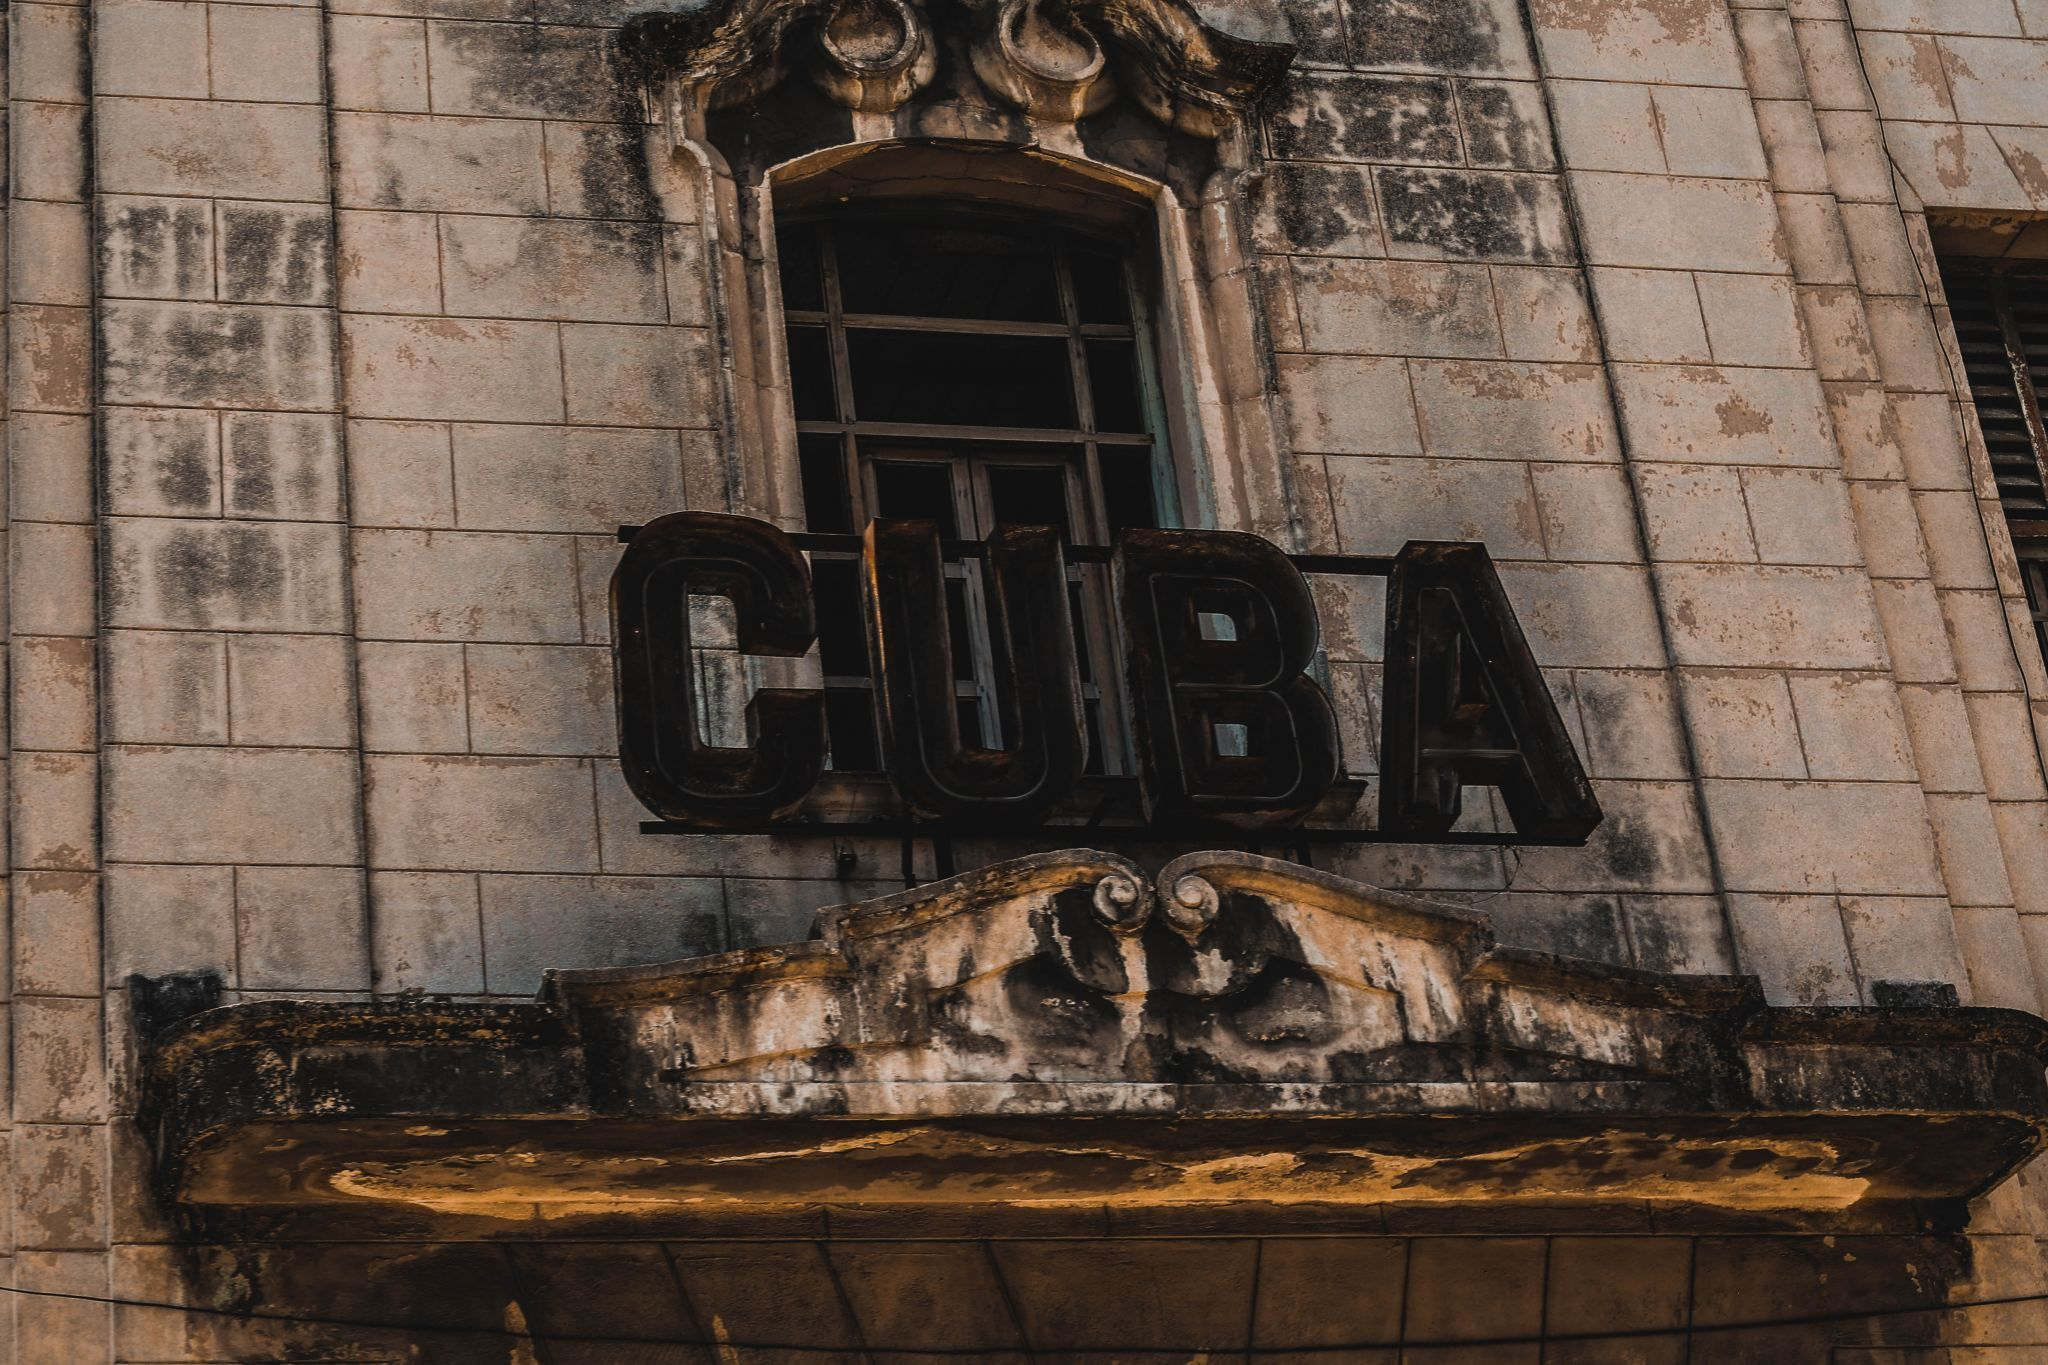 Why You Need To Visit Cuba #visitcuba Why You Need To Visit Cuba - Inthefrow #visitcuba Why You Need To Visit Cuba #visitcuba Why You Need To Visit Cuba - Inthefrow #visitcuba